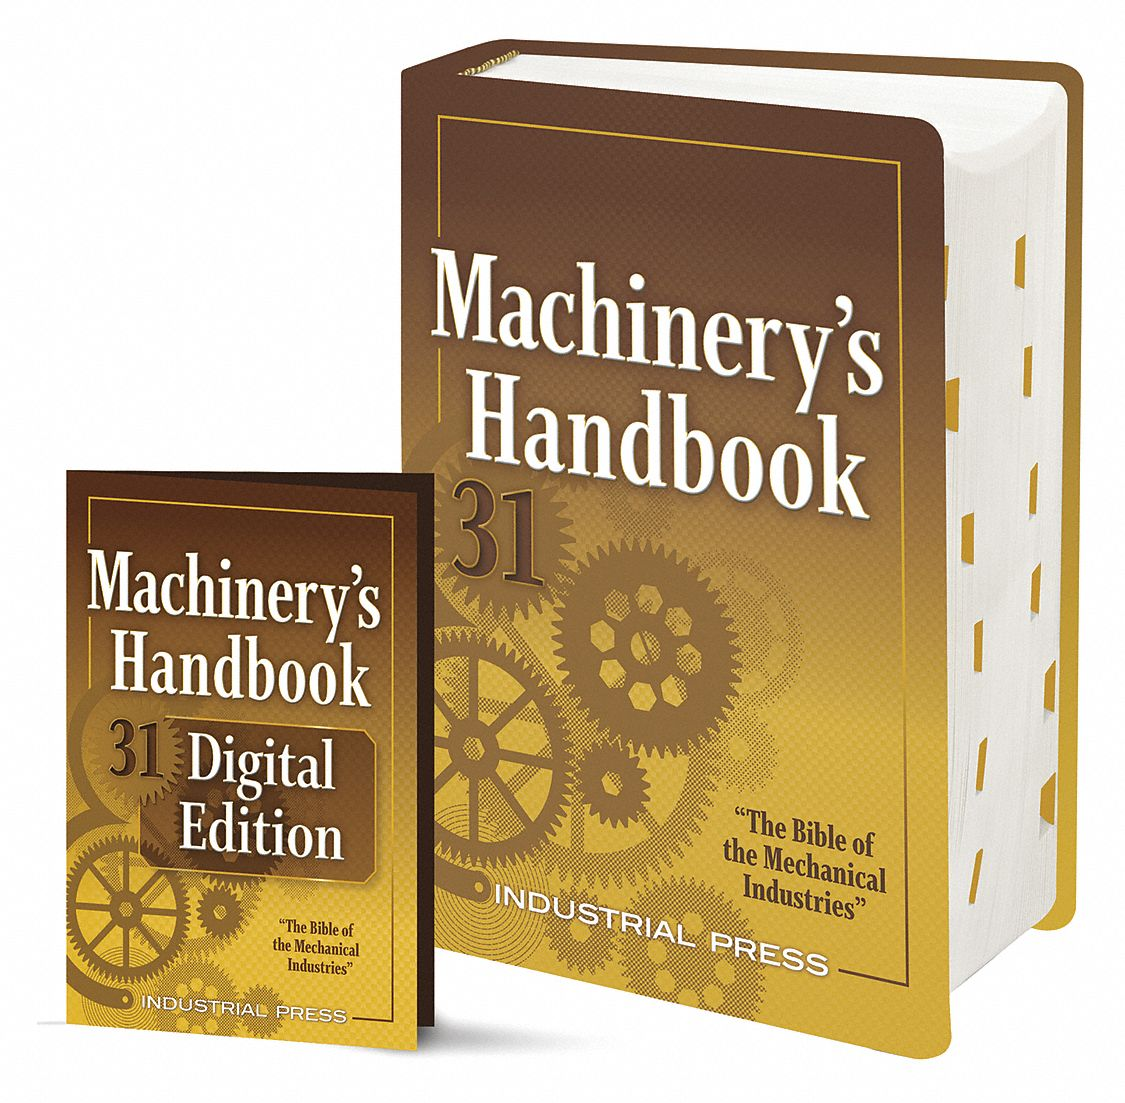 Reference Book,  Machining,  Large Print, Digital Combo,  31st. Book Edition,  Hardcover